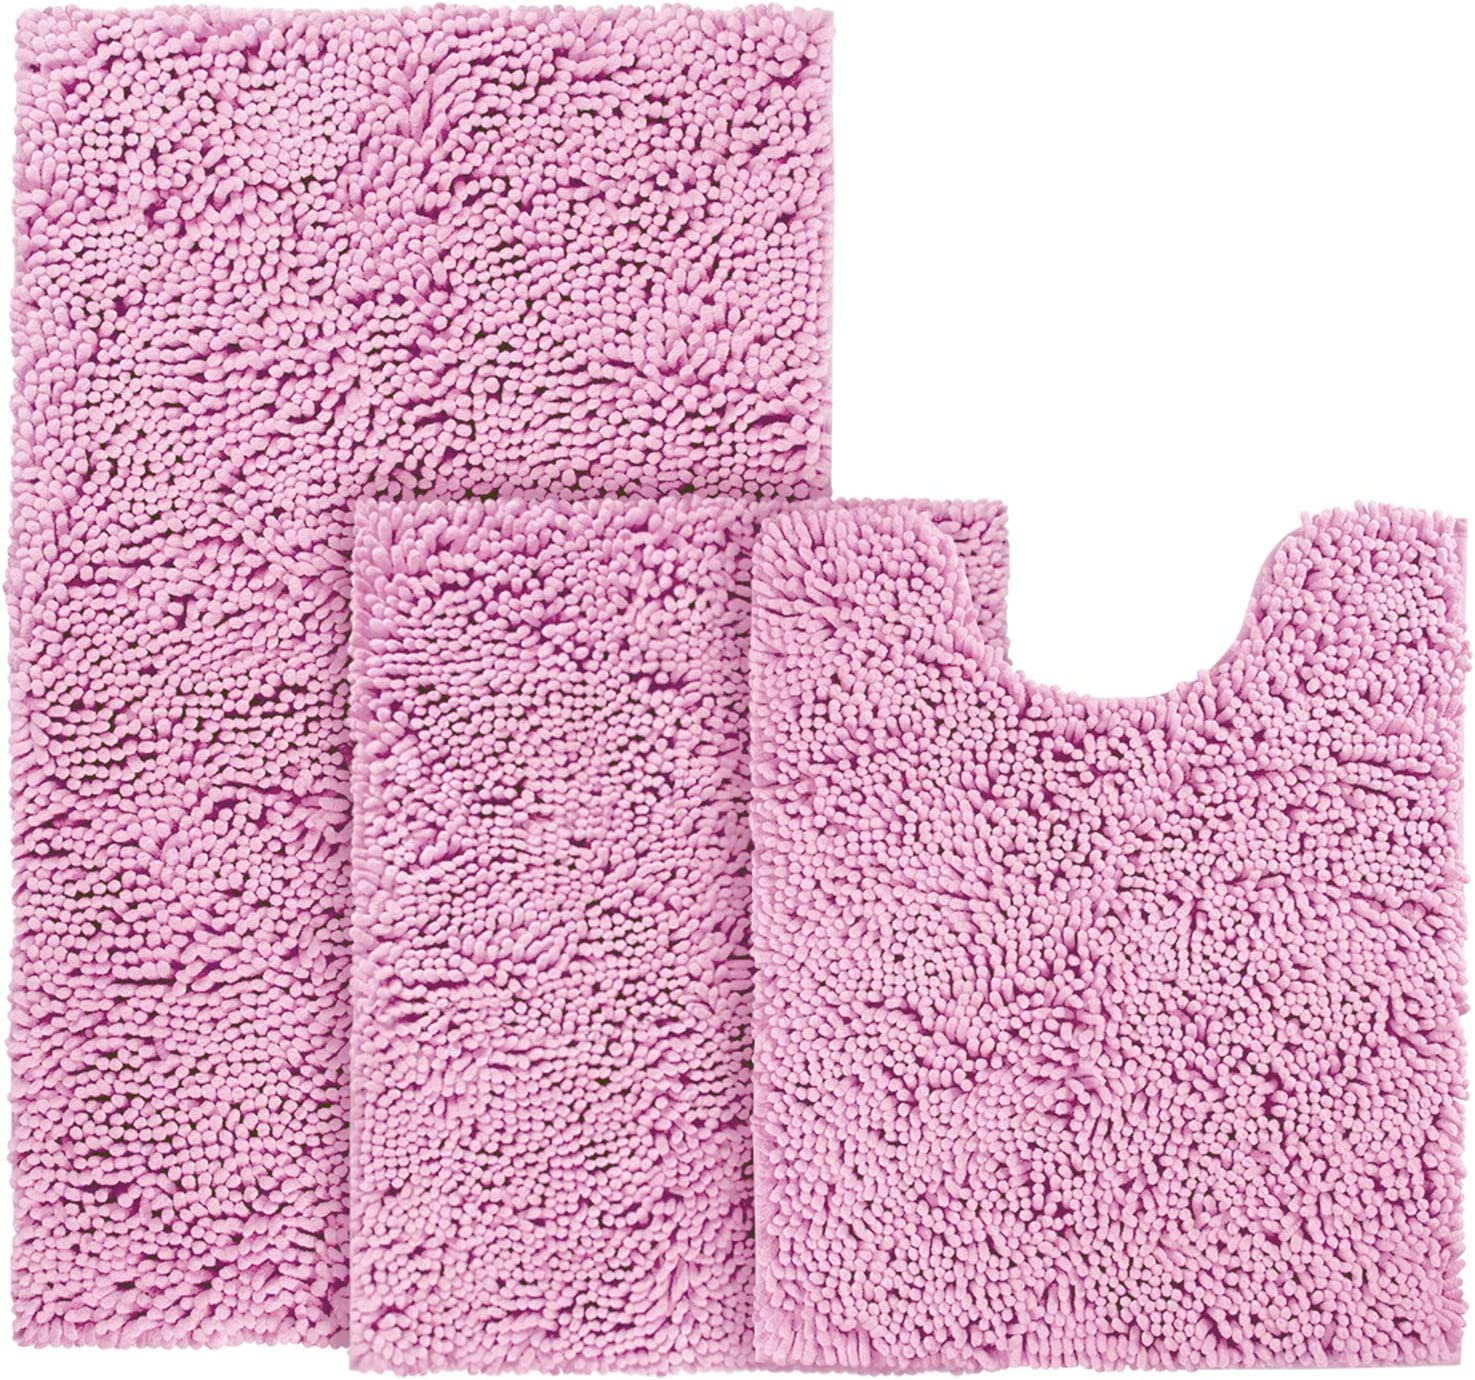 Amazon Com Bysure Pink Bathroom Rugs Set 3 Piece Non Slip Extra Absorbent Shaggy Chenille Bathroom Rugs And Mats Sets Soft Dry Bath Rug Mat Sets For Bathroom Washable Carpets Set Kitchen